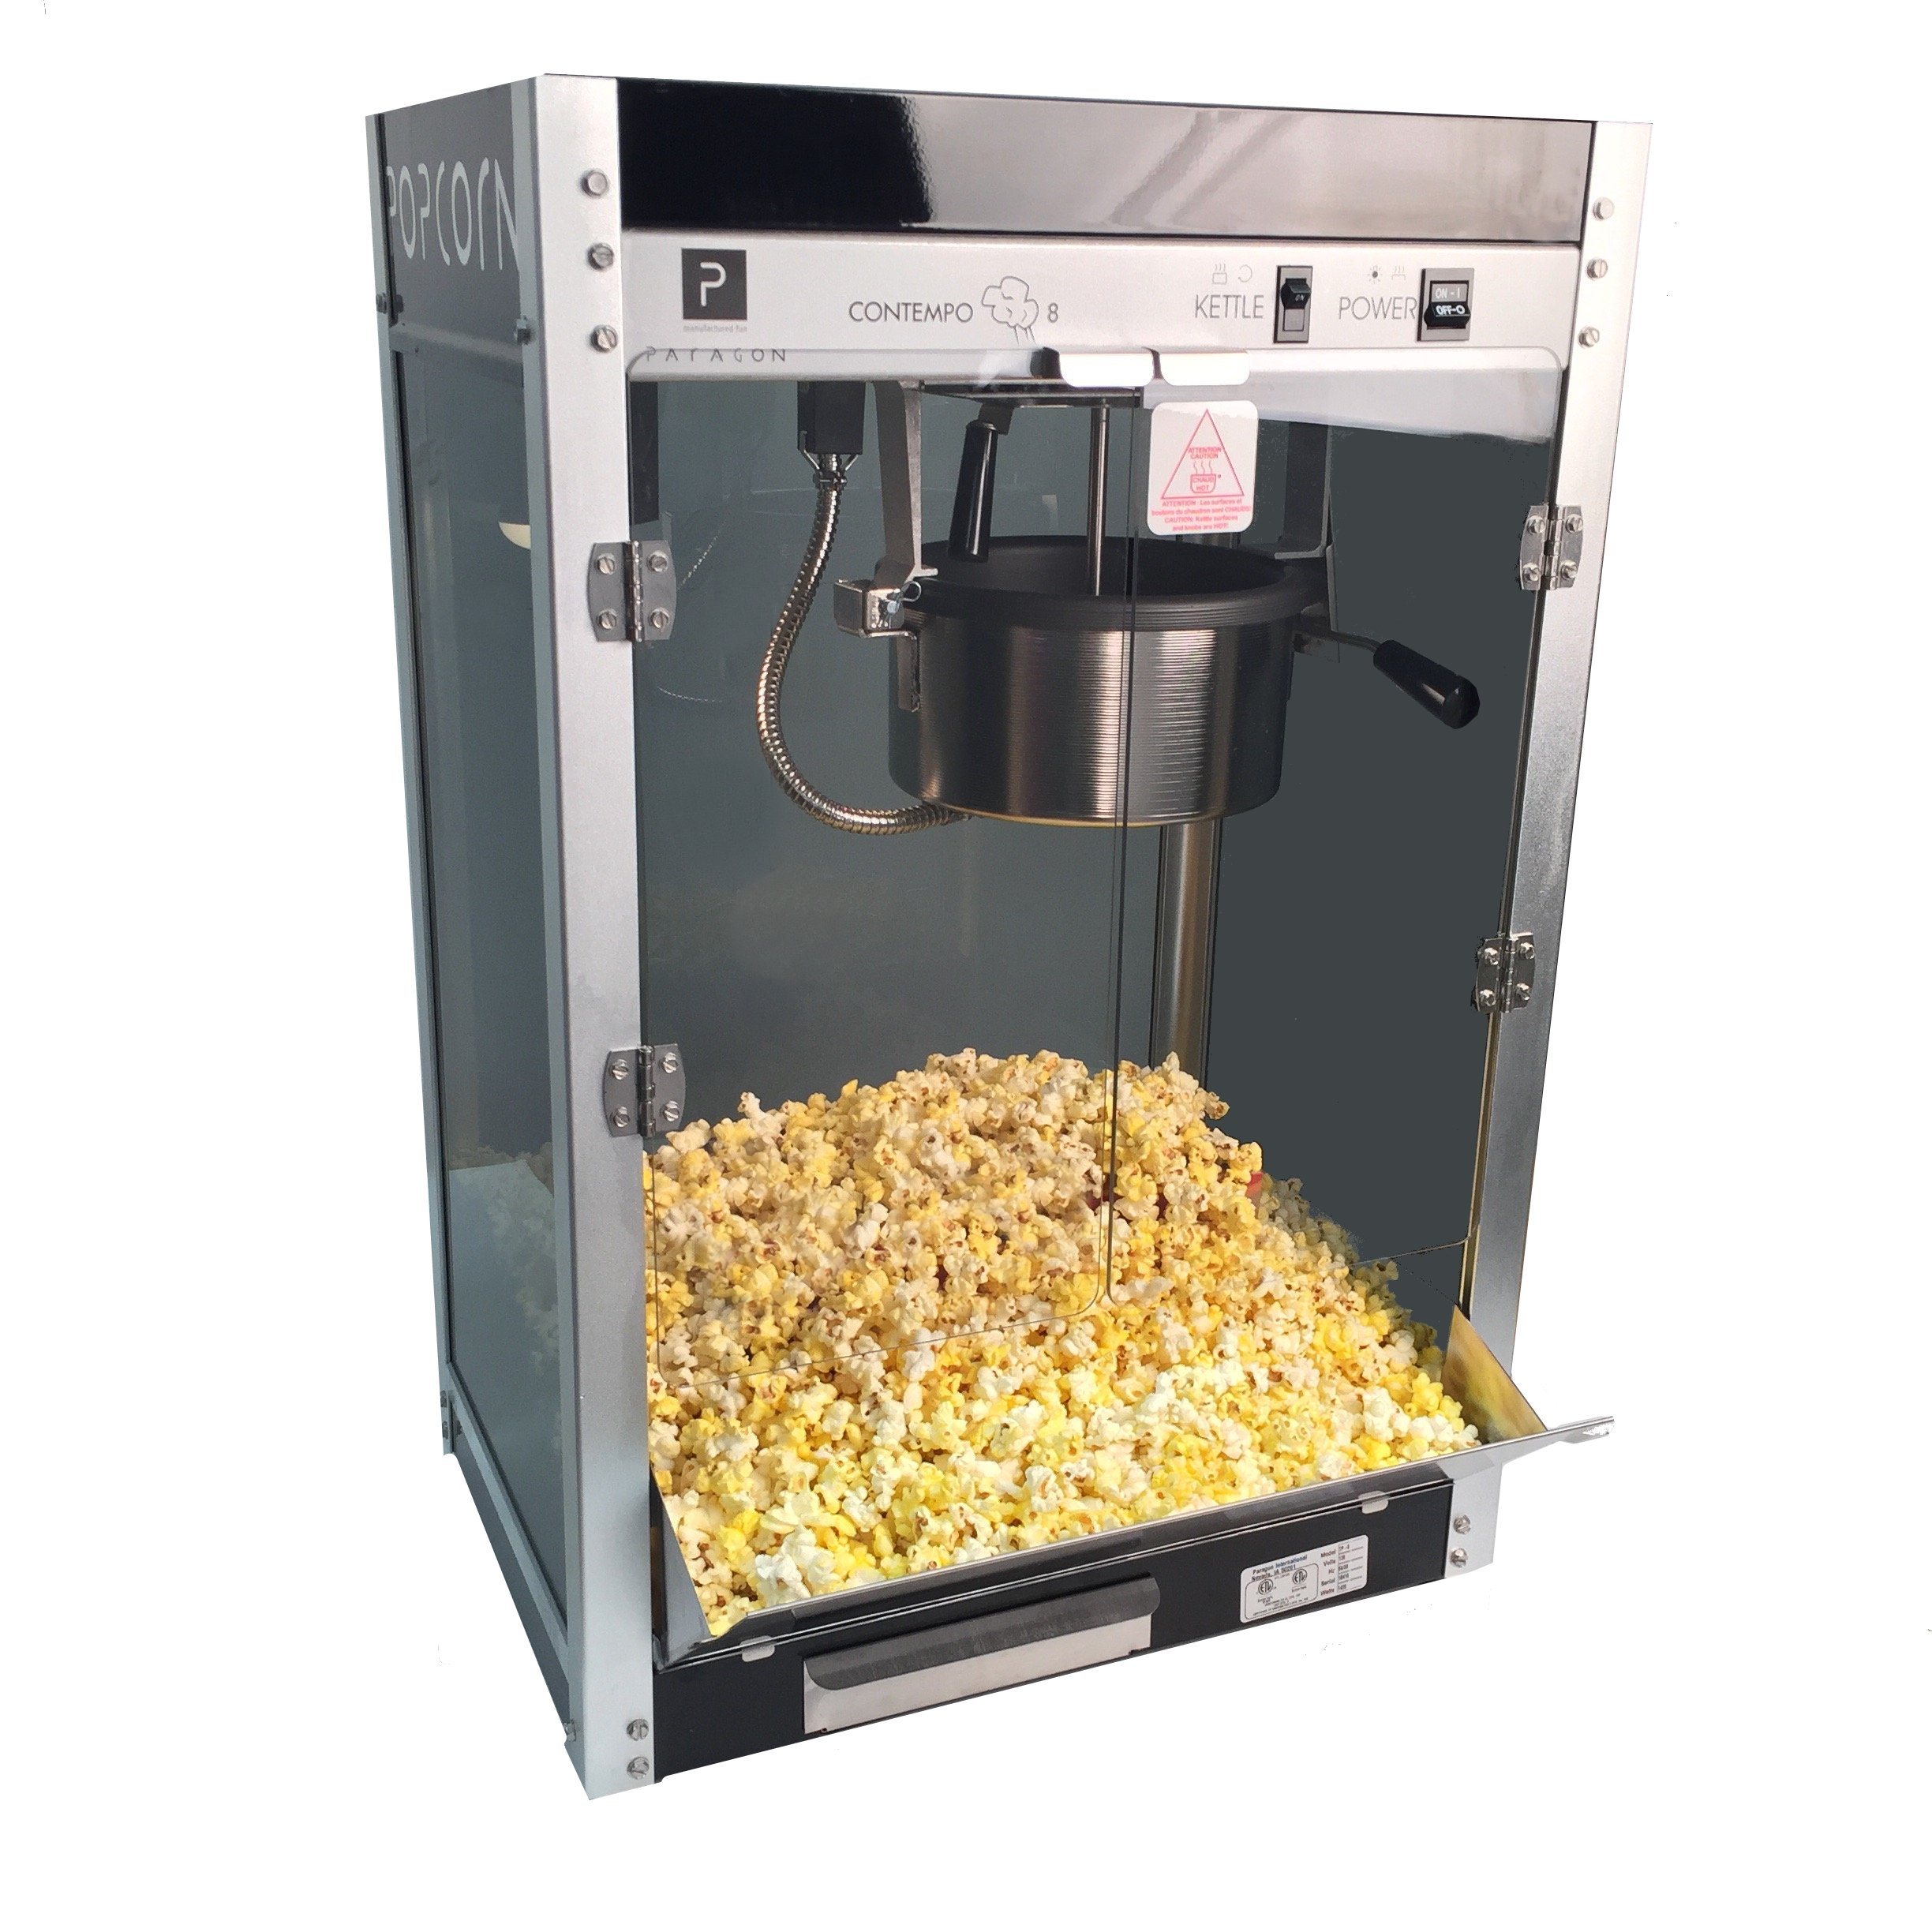 Paragon Contempo Pop 8 Ounce Popcorn Machine for Professional Concessionaires Requiring Commercial Quality High Output Popcorn Equipment by Paragon - Manufactured Fun